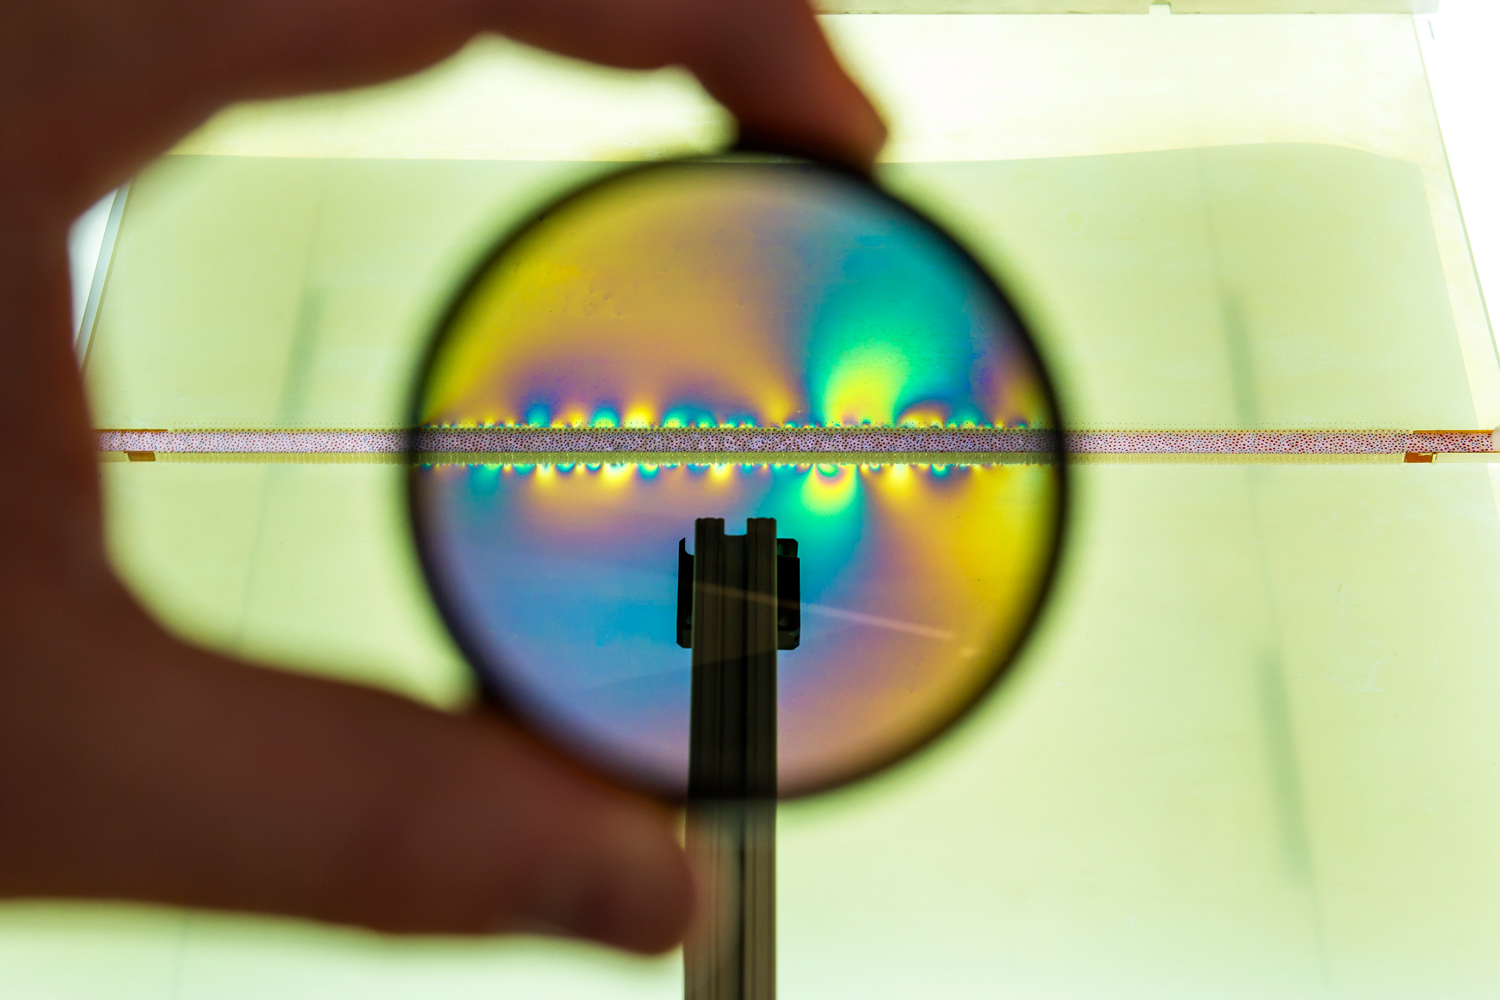 A hand holds a lens in front of the seam between two plastic blocks. Through the lens, colorful light emanates from stress points in the seam.